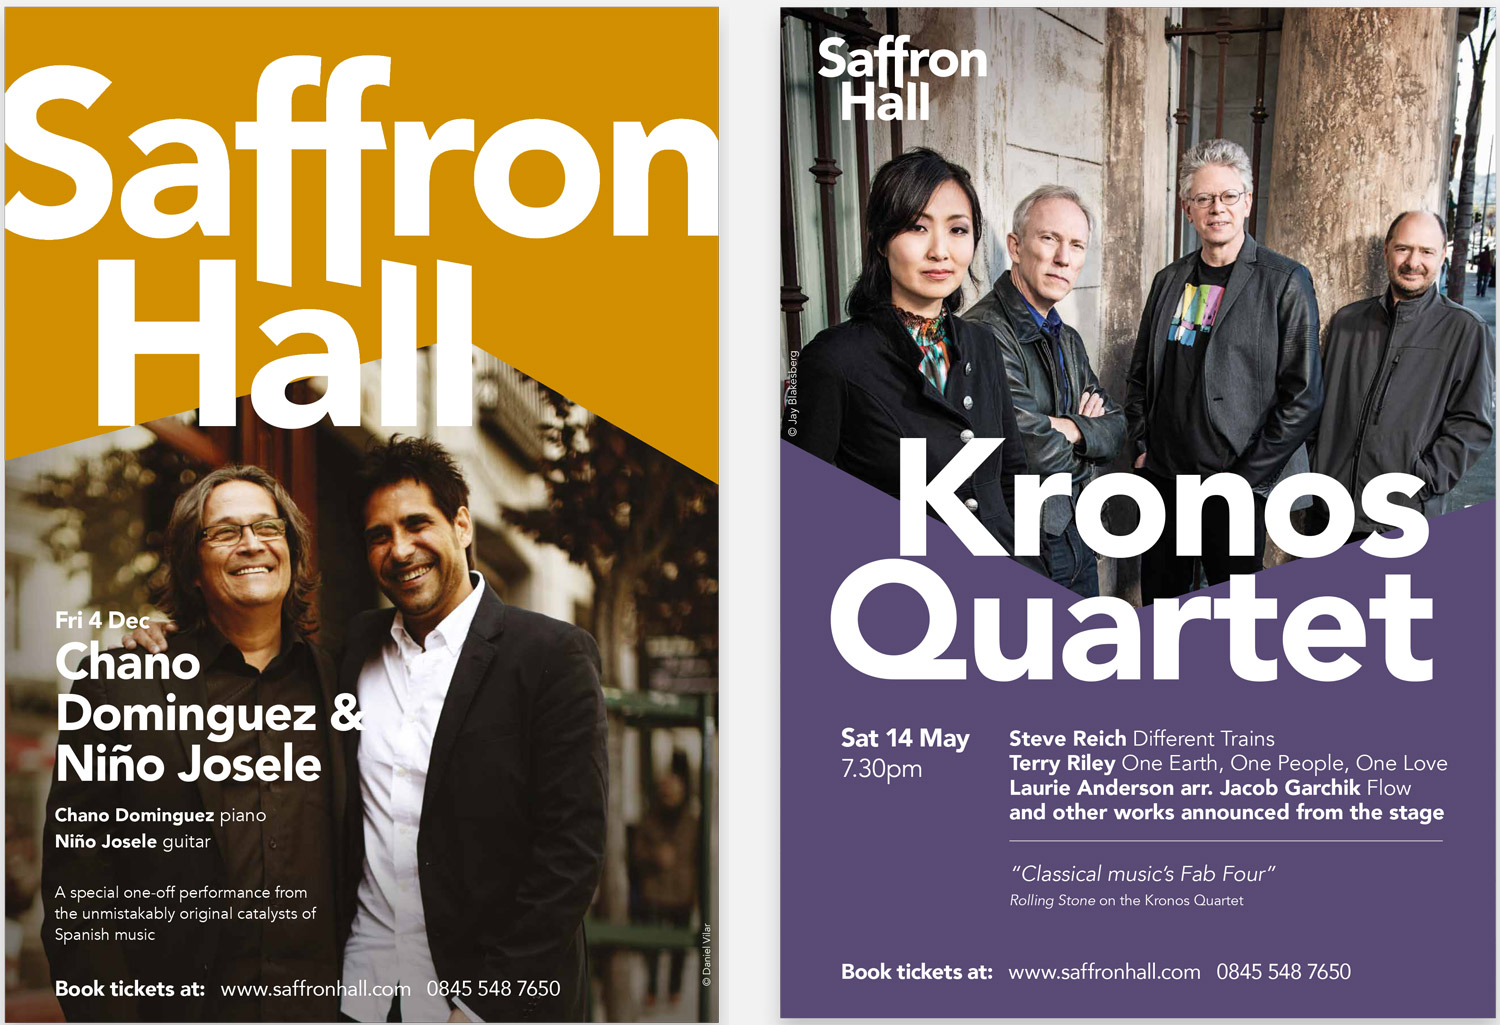 saffron_hall_posters_x2_early